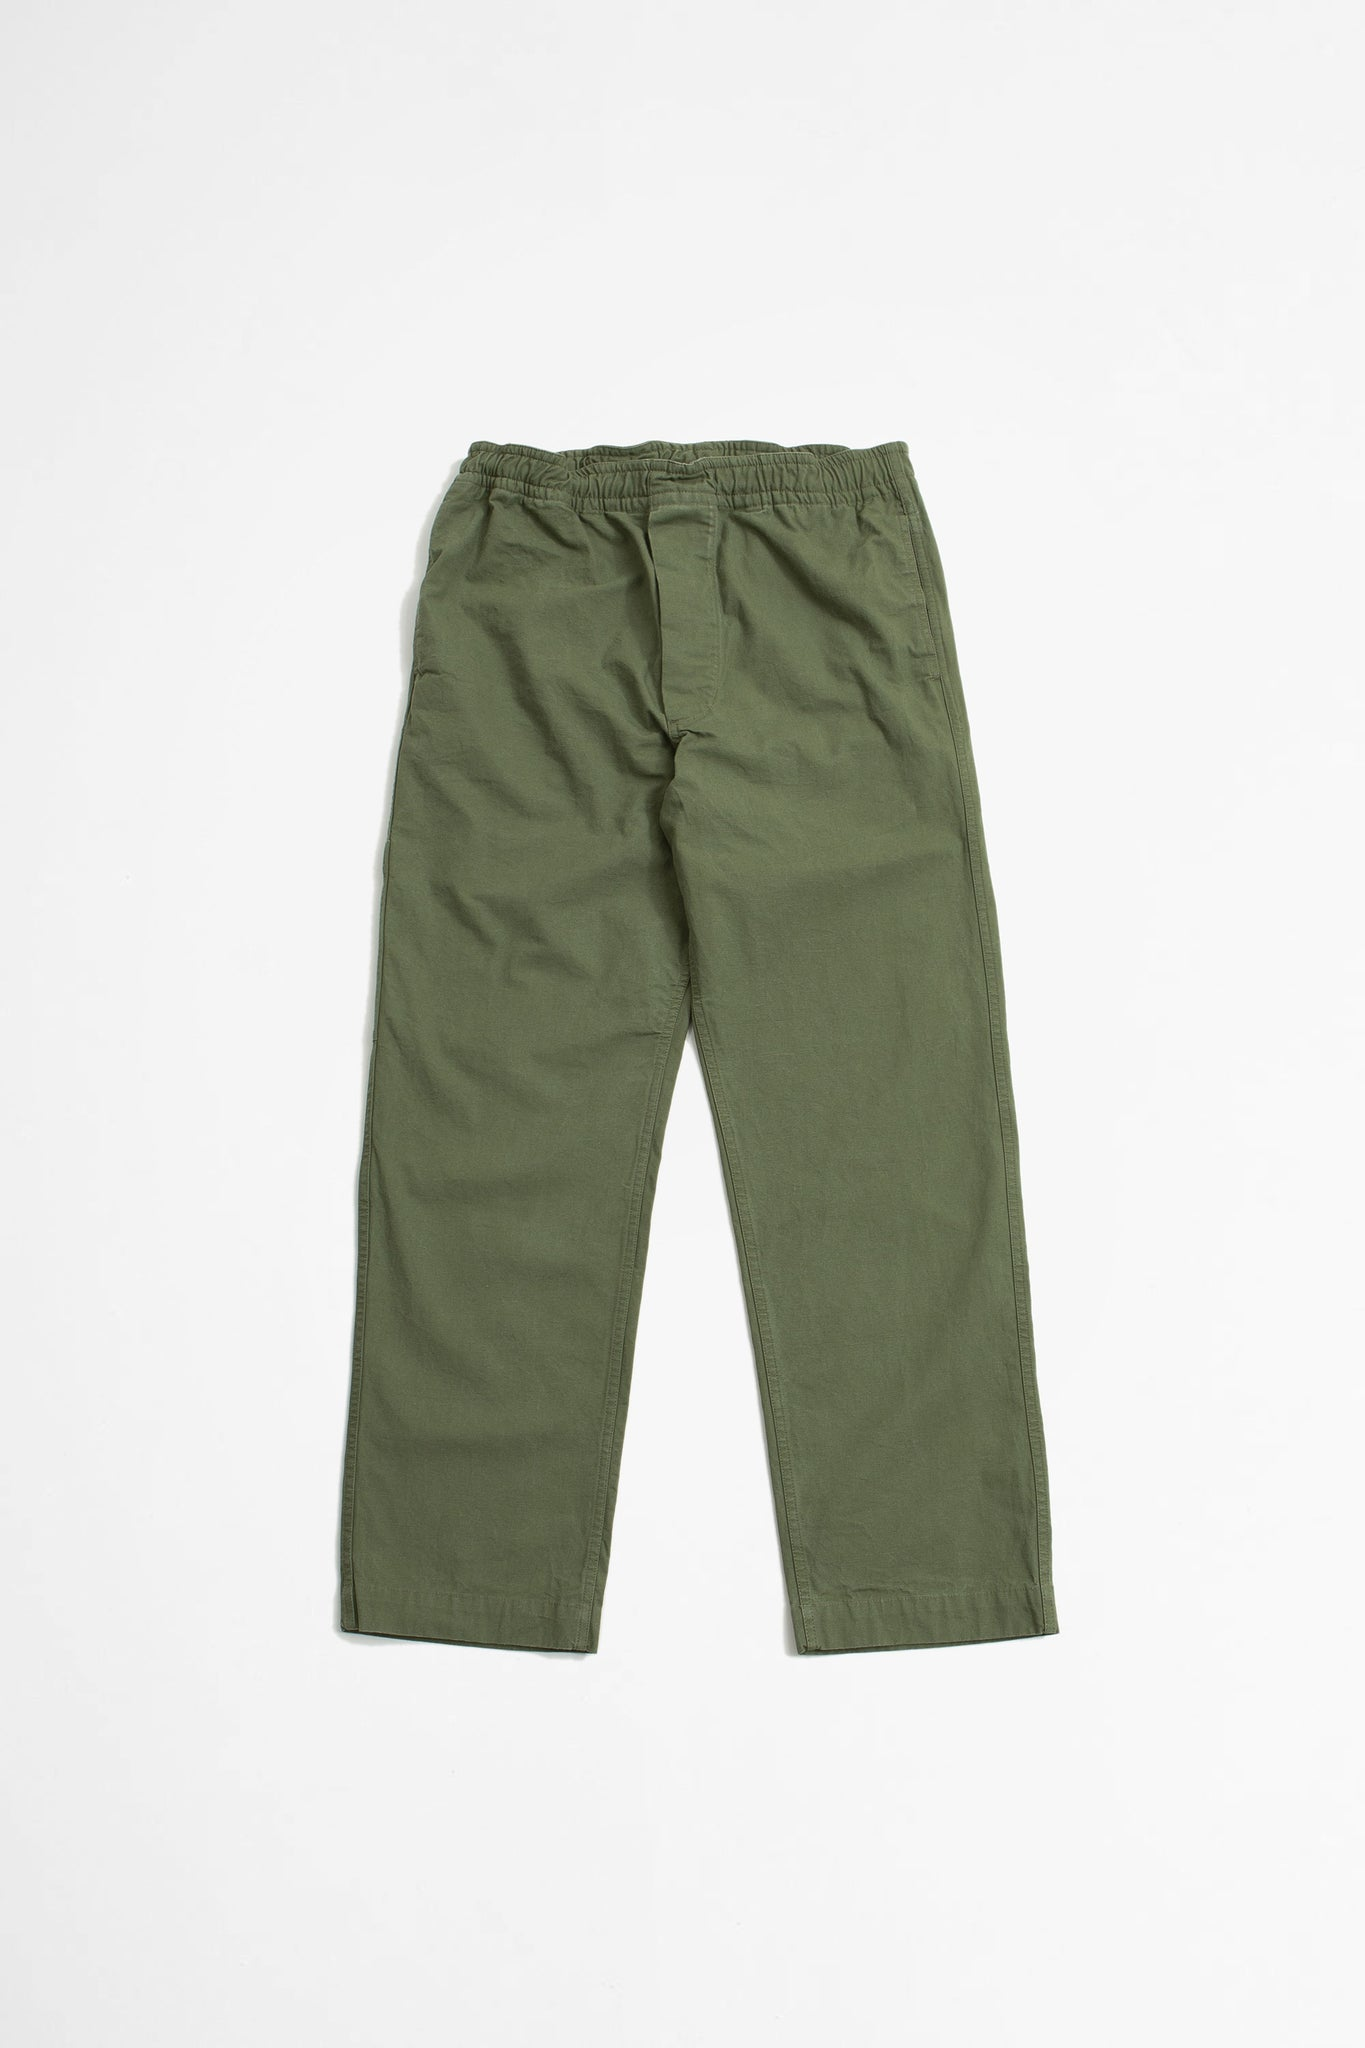 Pull up trouser compact broken drill khaki